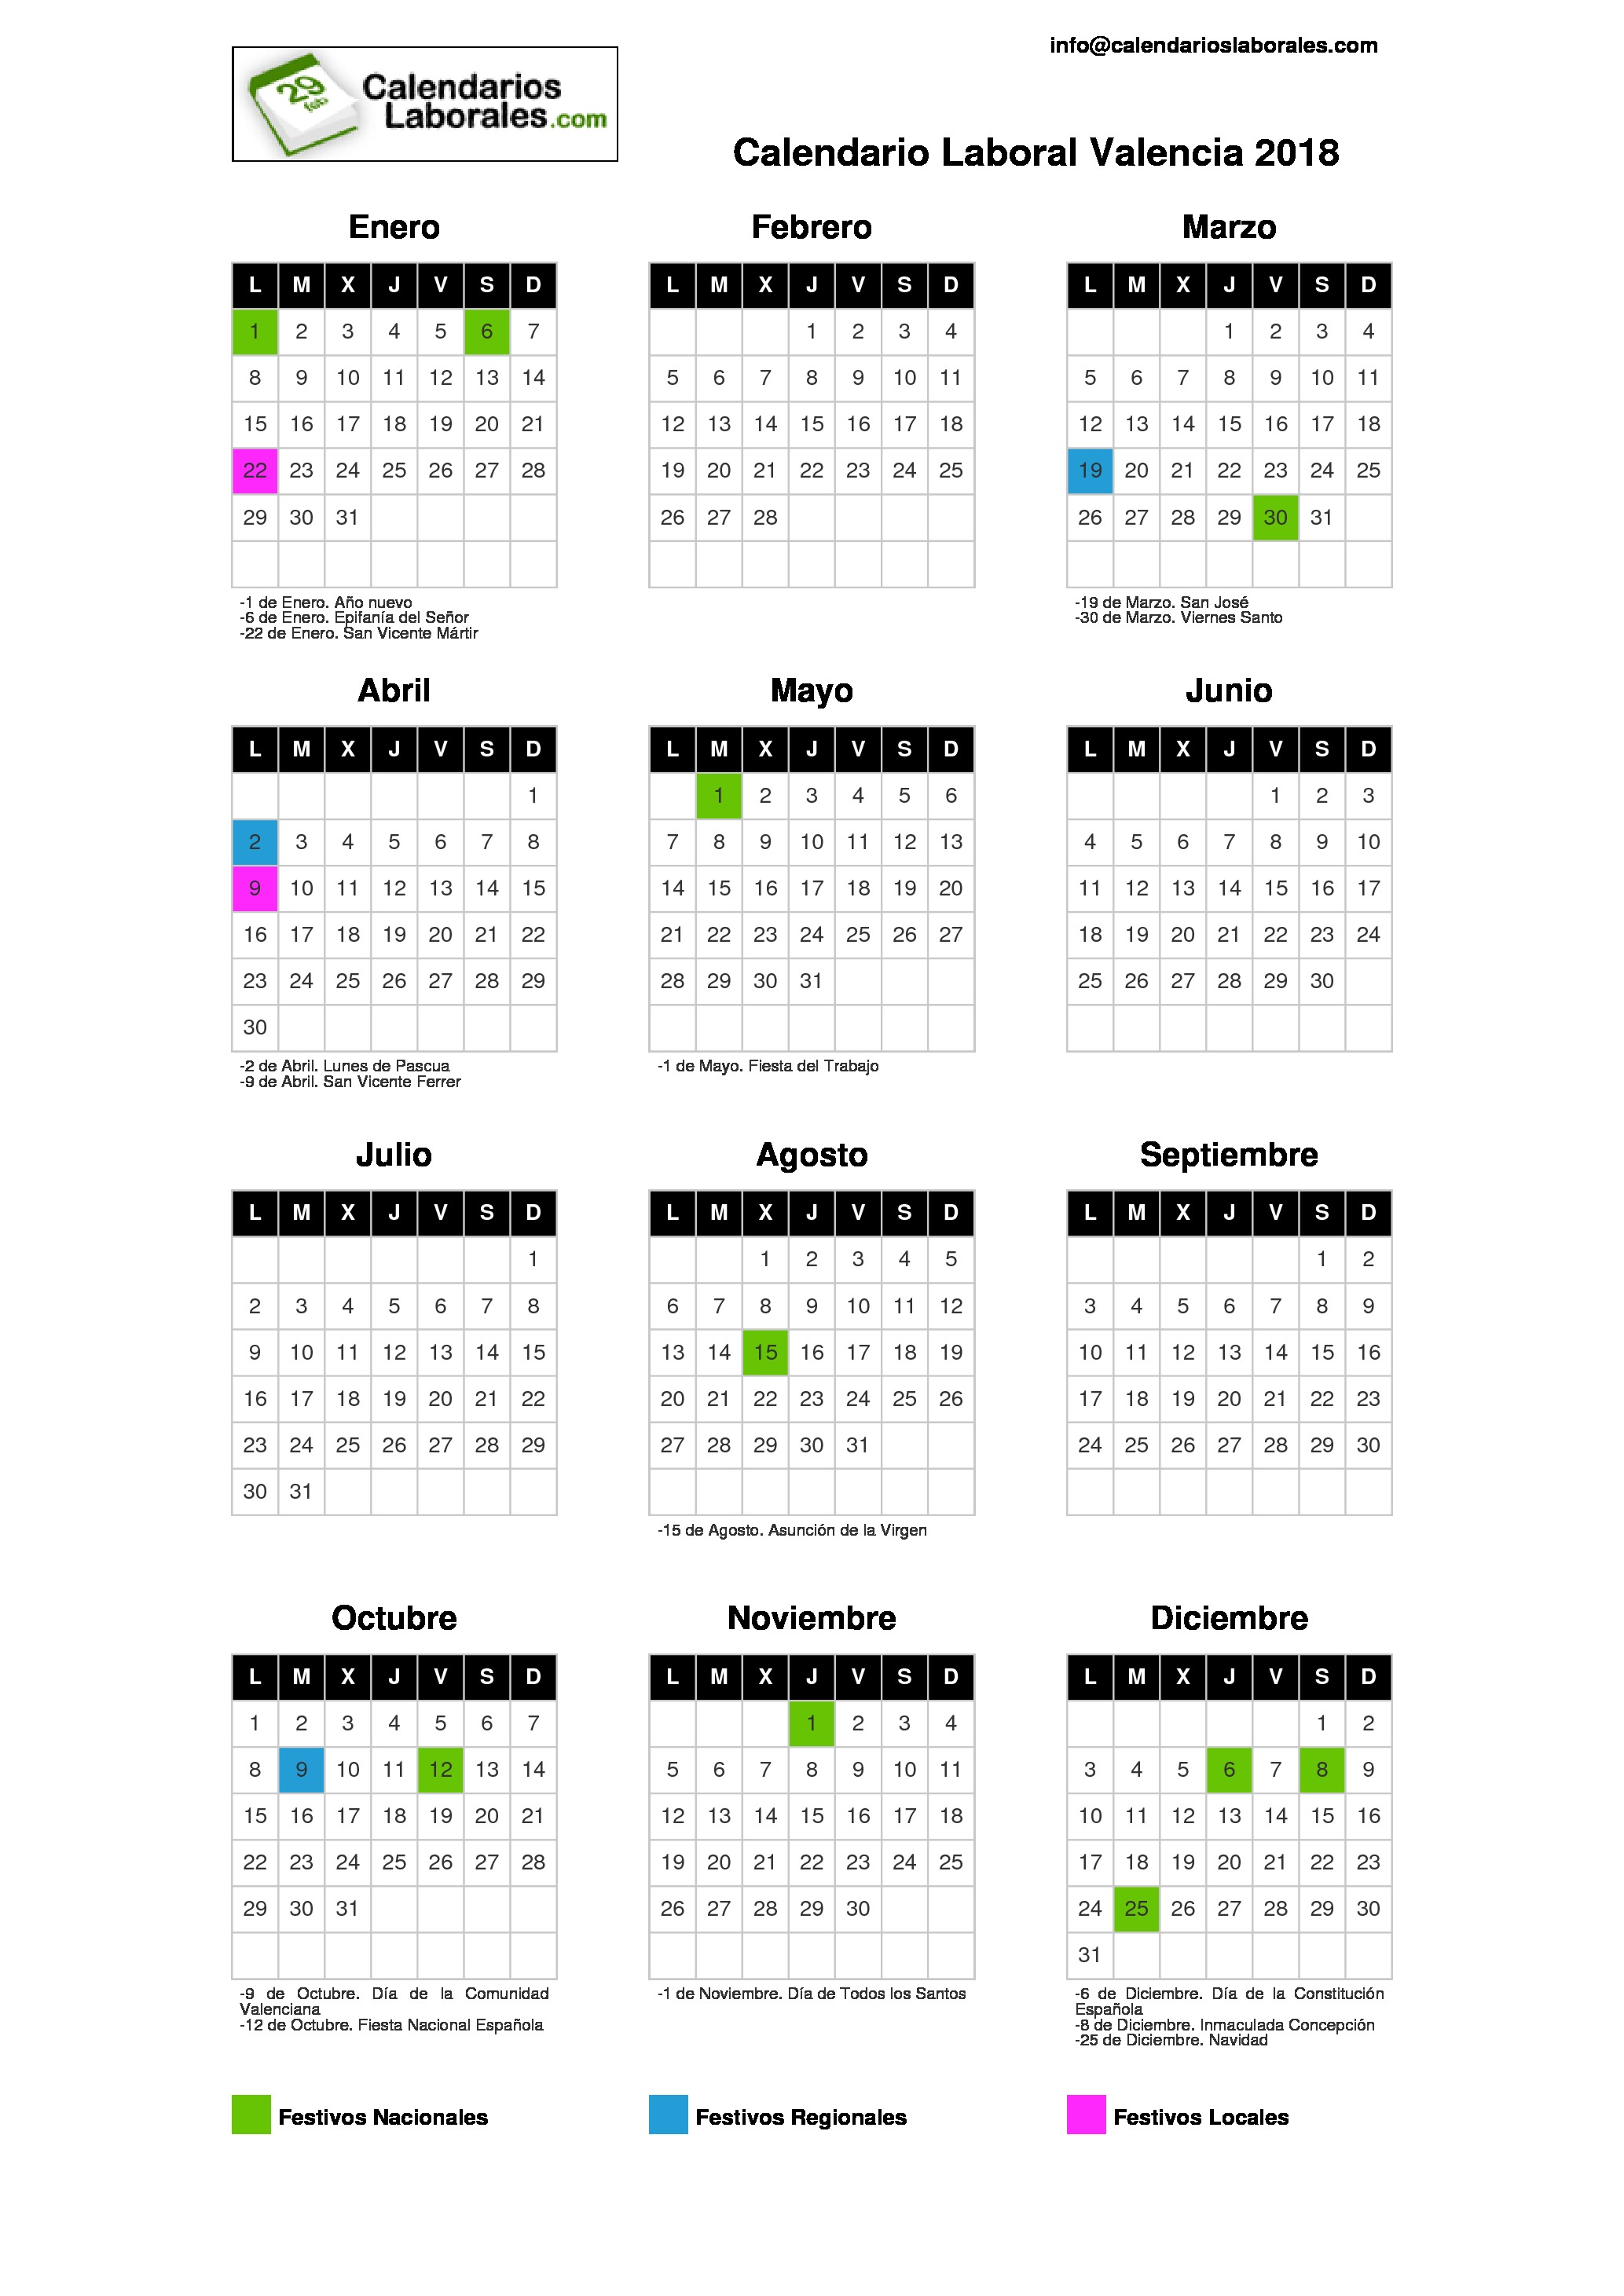 Calendario laboral valencia 2018 for Festivos asturias 2017